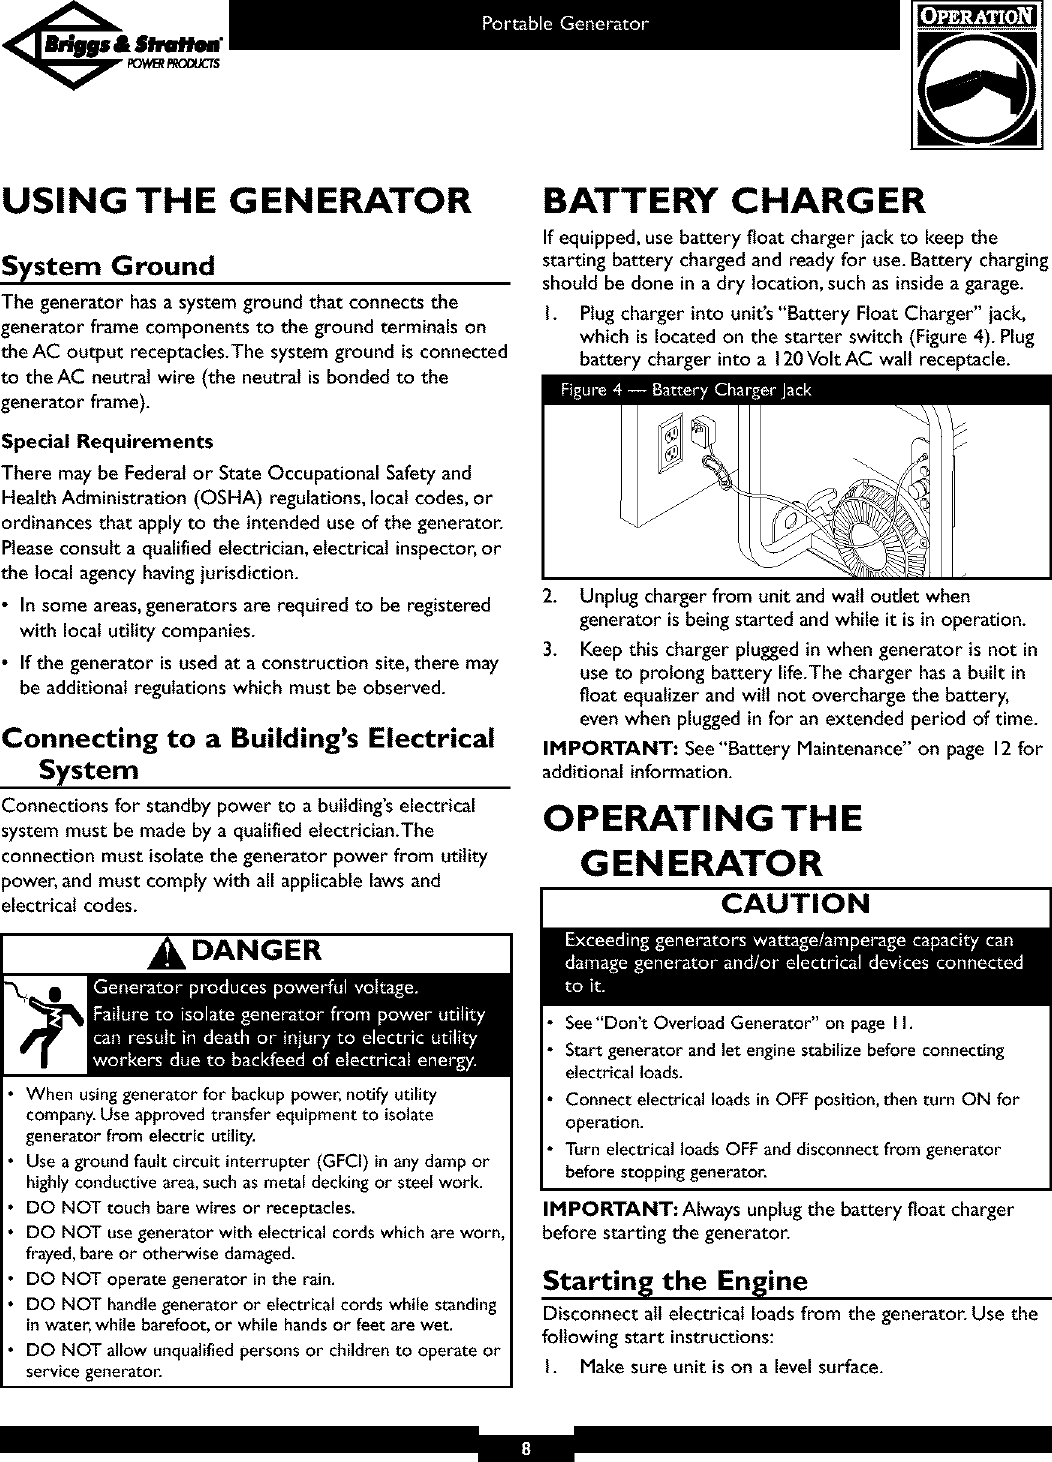 Briggs & Stratton 01653 User Manual GENERATOR Manuals And Guides